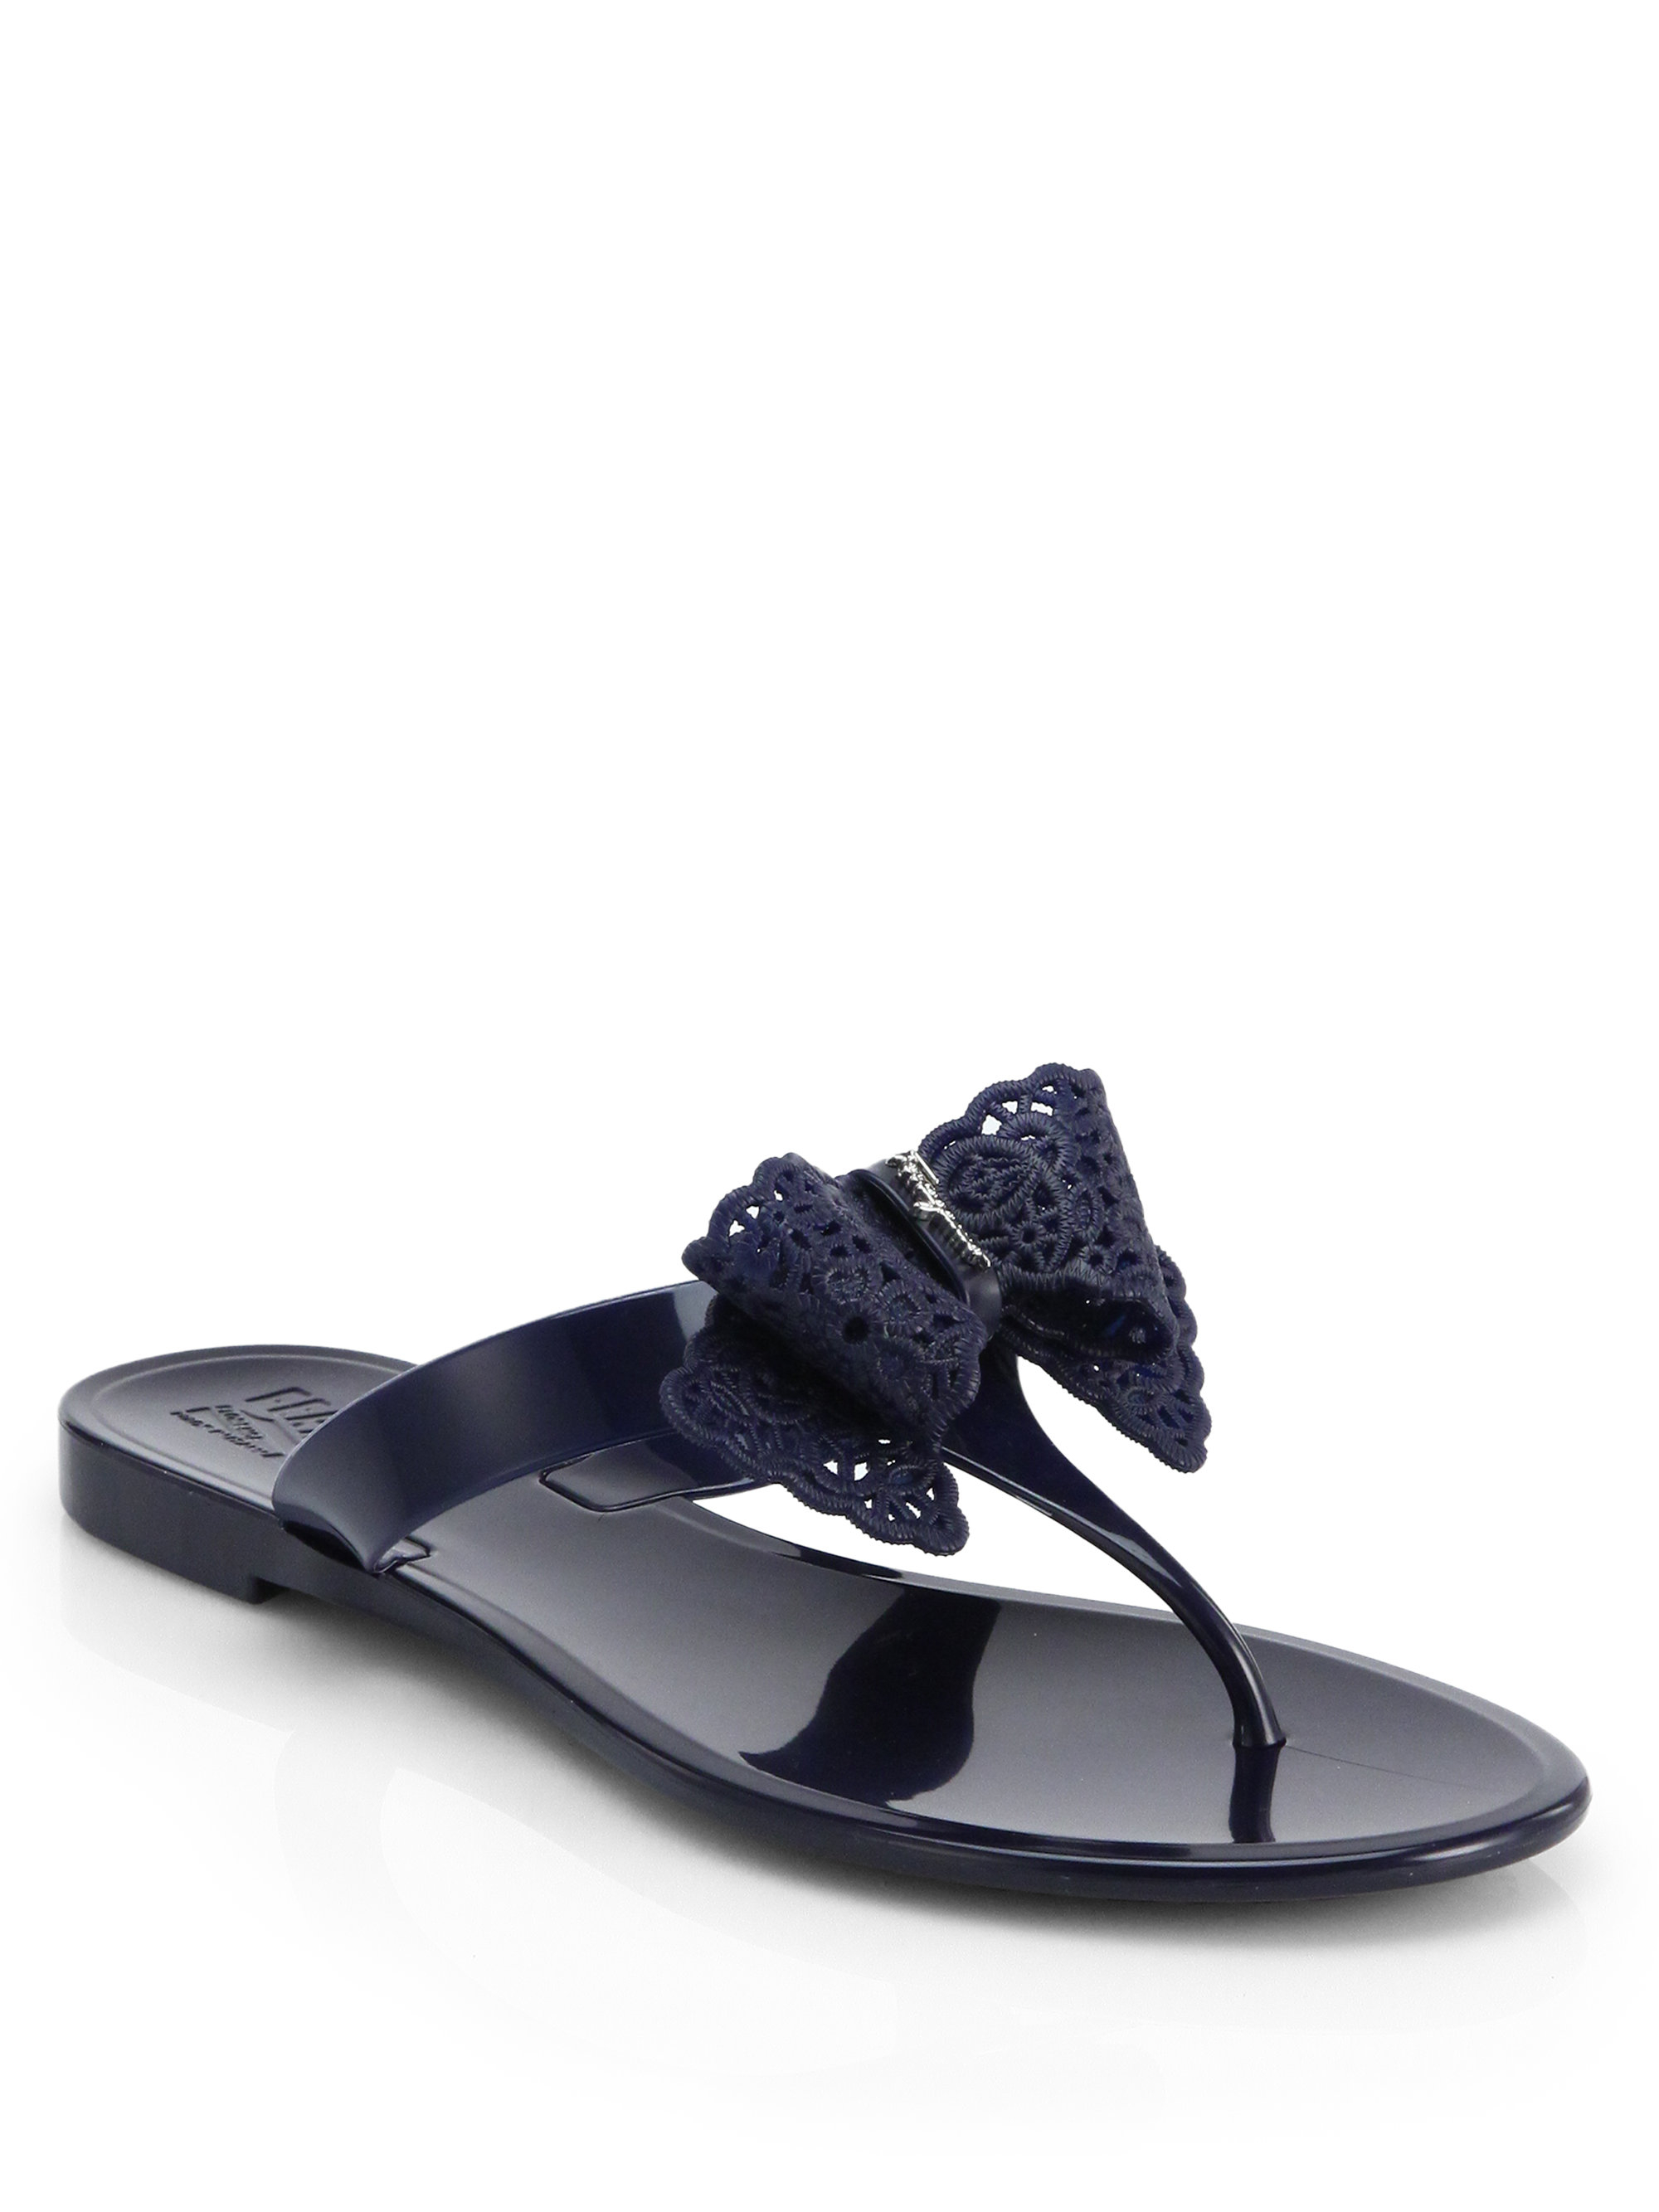 Ferragamo Pandy Bow Jelly Thong Sandals In Black Oxford